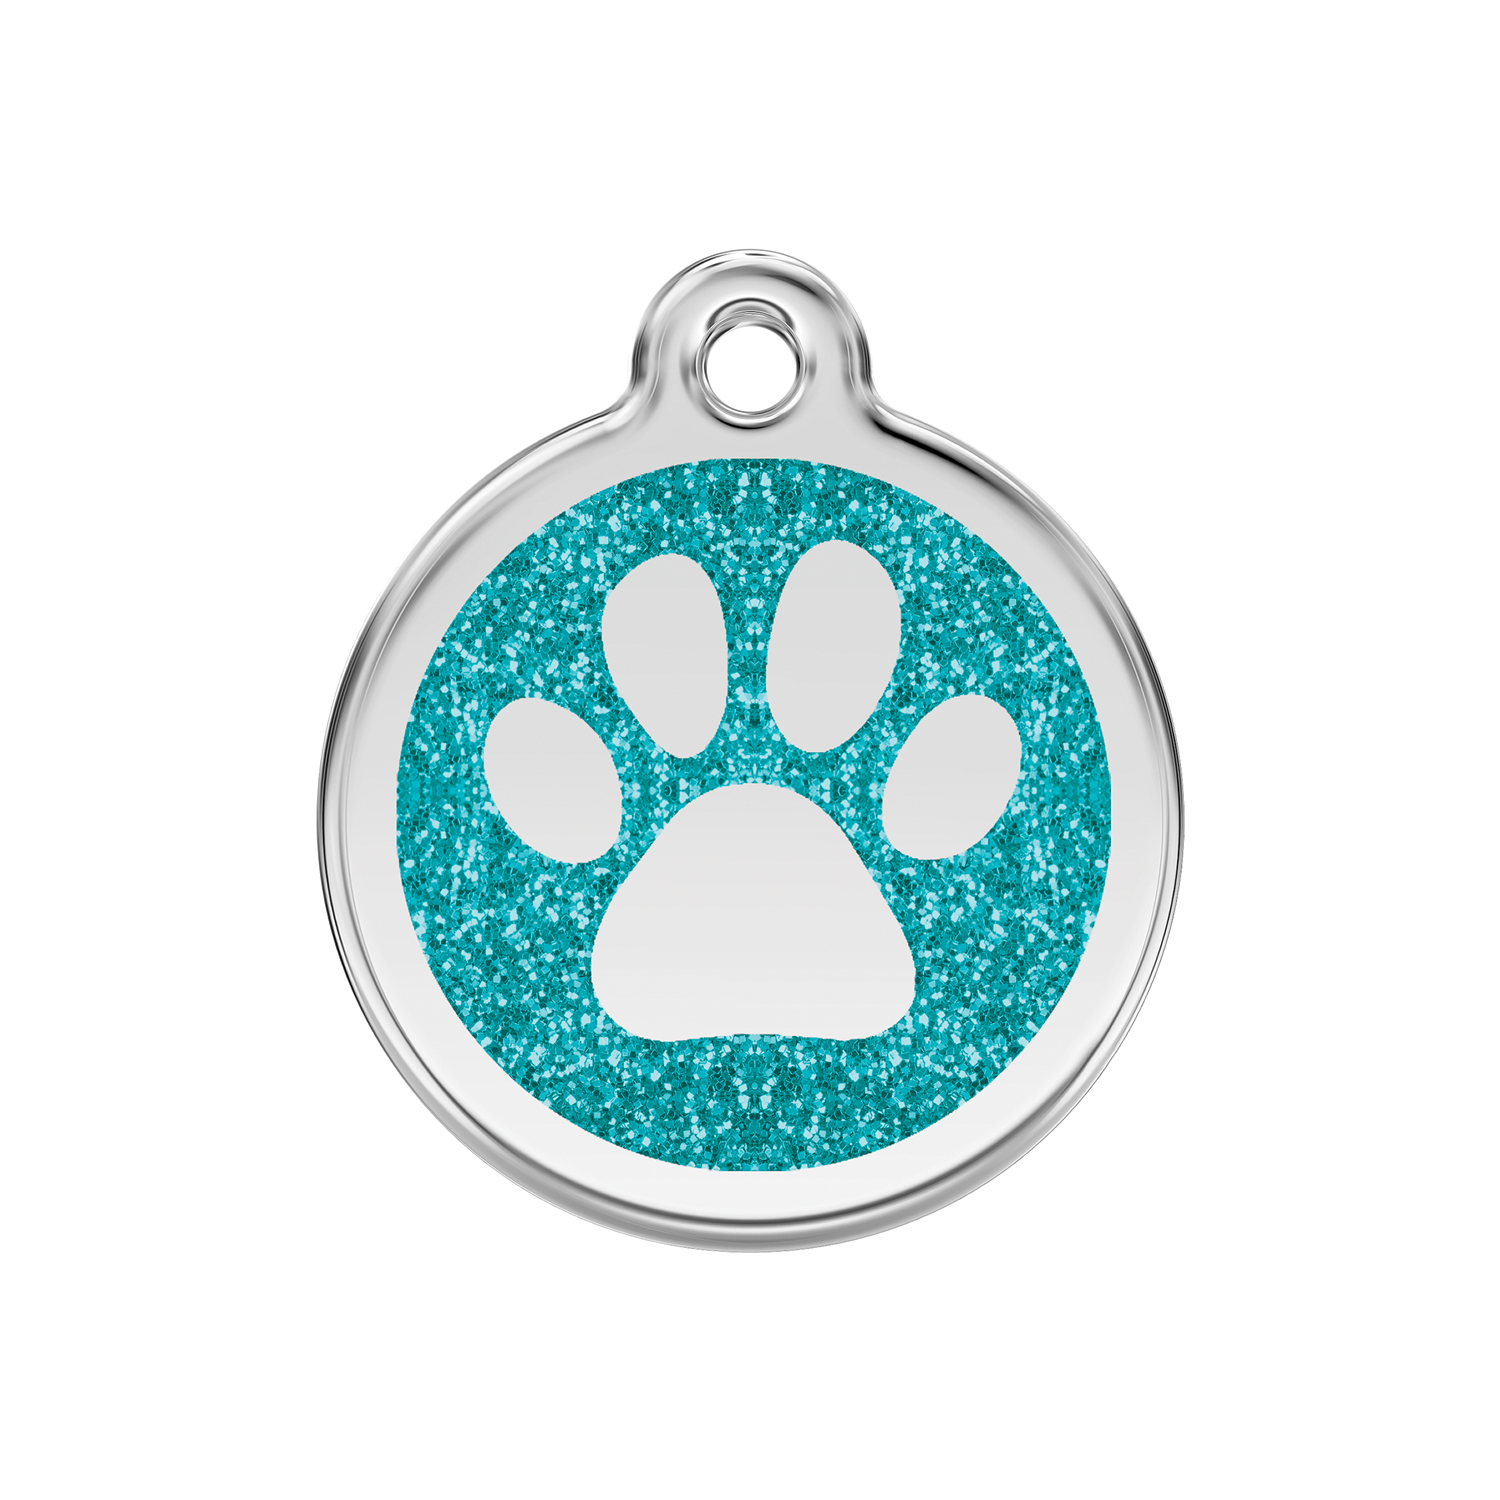 Aqua Paw Print Medium Glitter Enamel & Stainless Steel Tag>